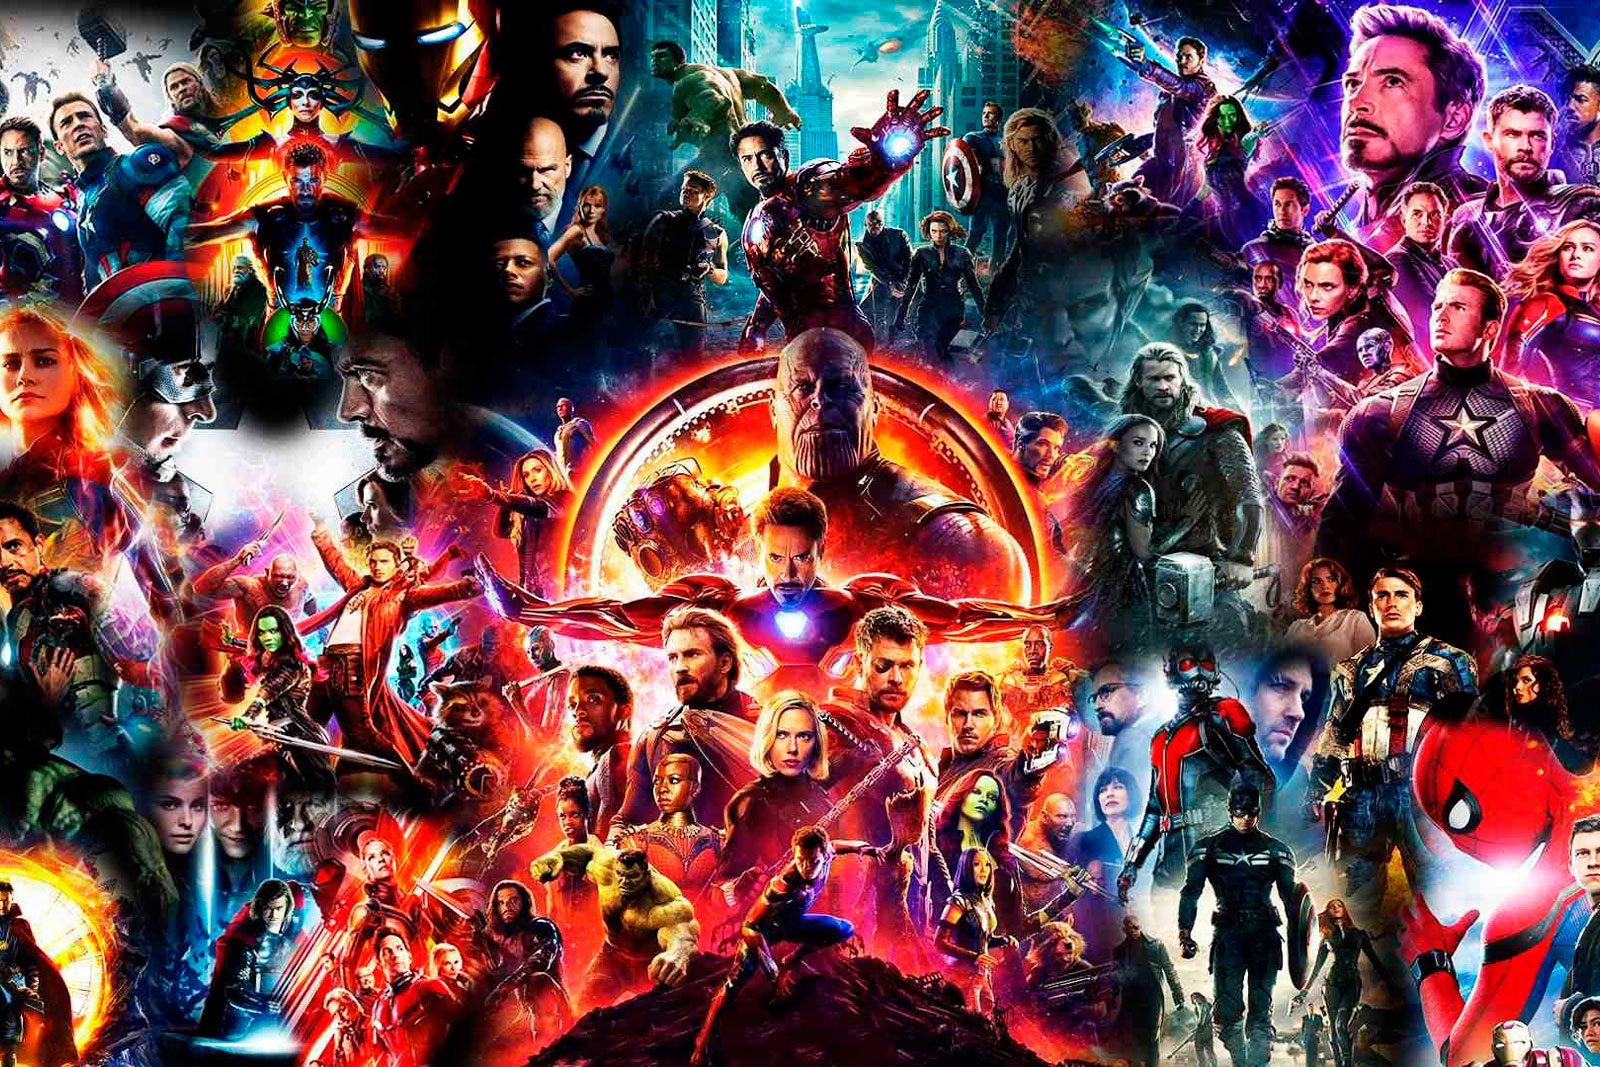 Why You Shouldn't Watch the Marvel Cinematic Universe Movies in Chronological Order